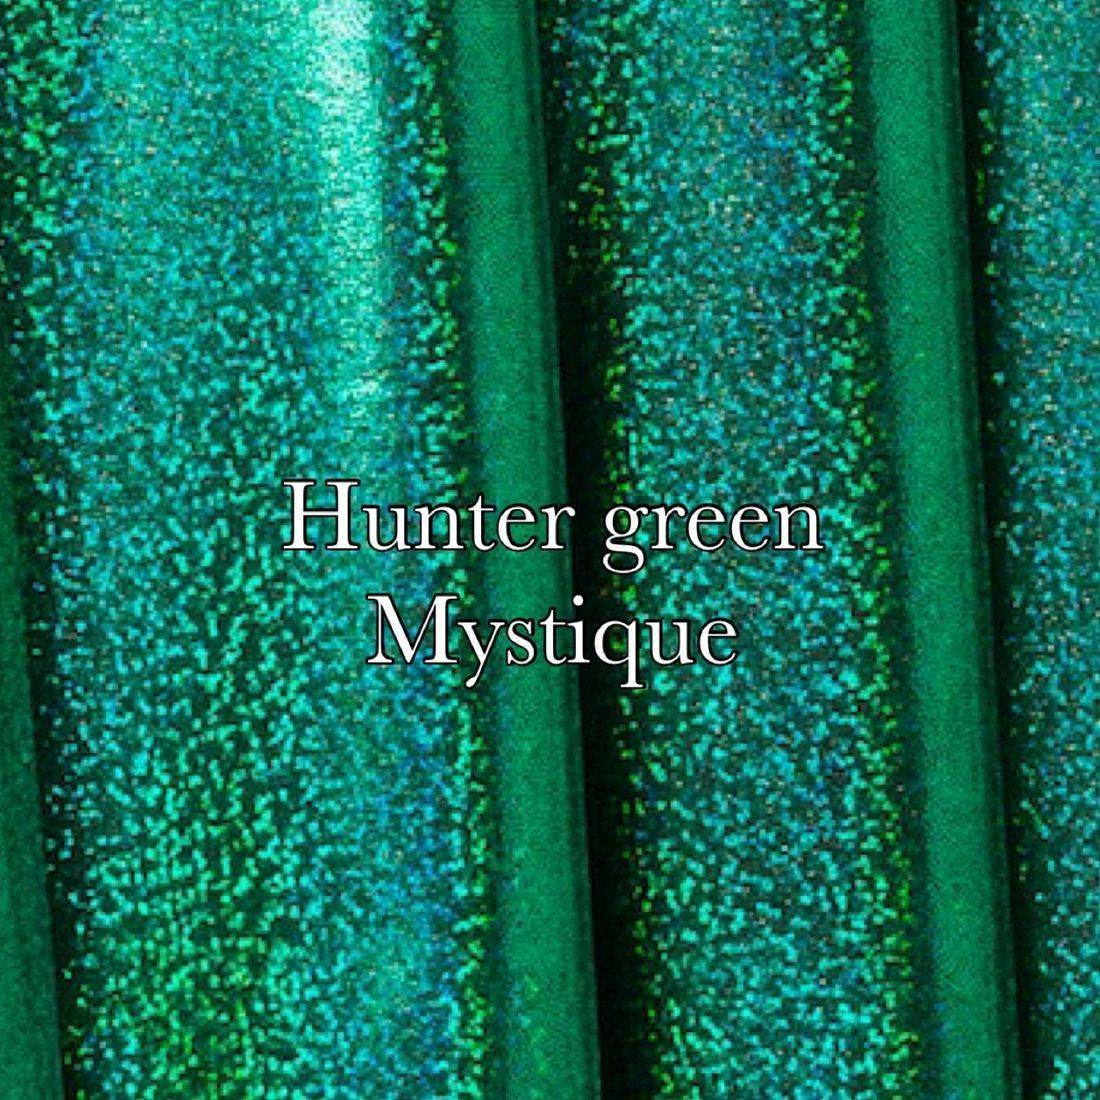 Emerald black holographic mist